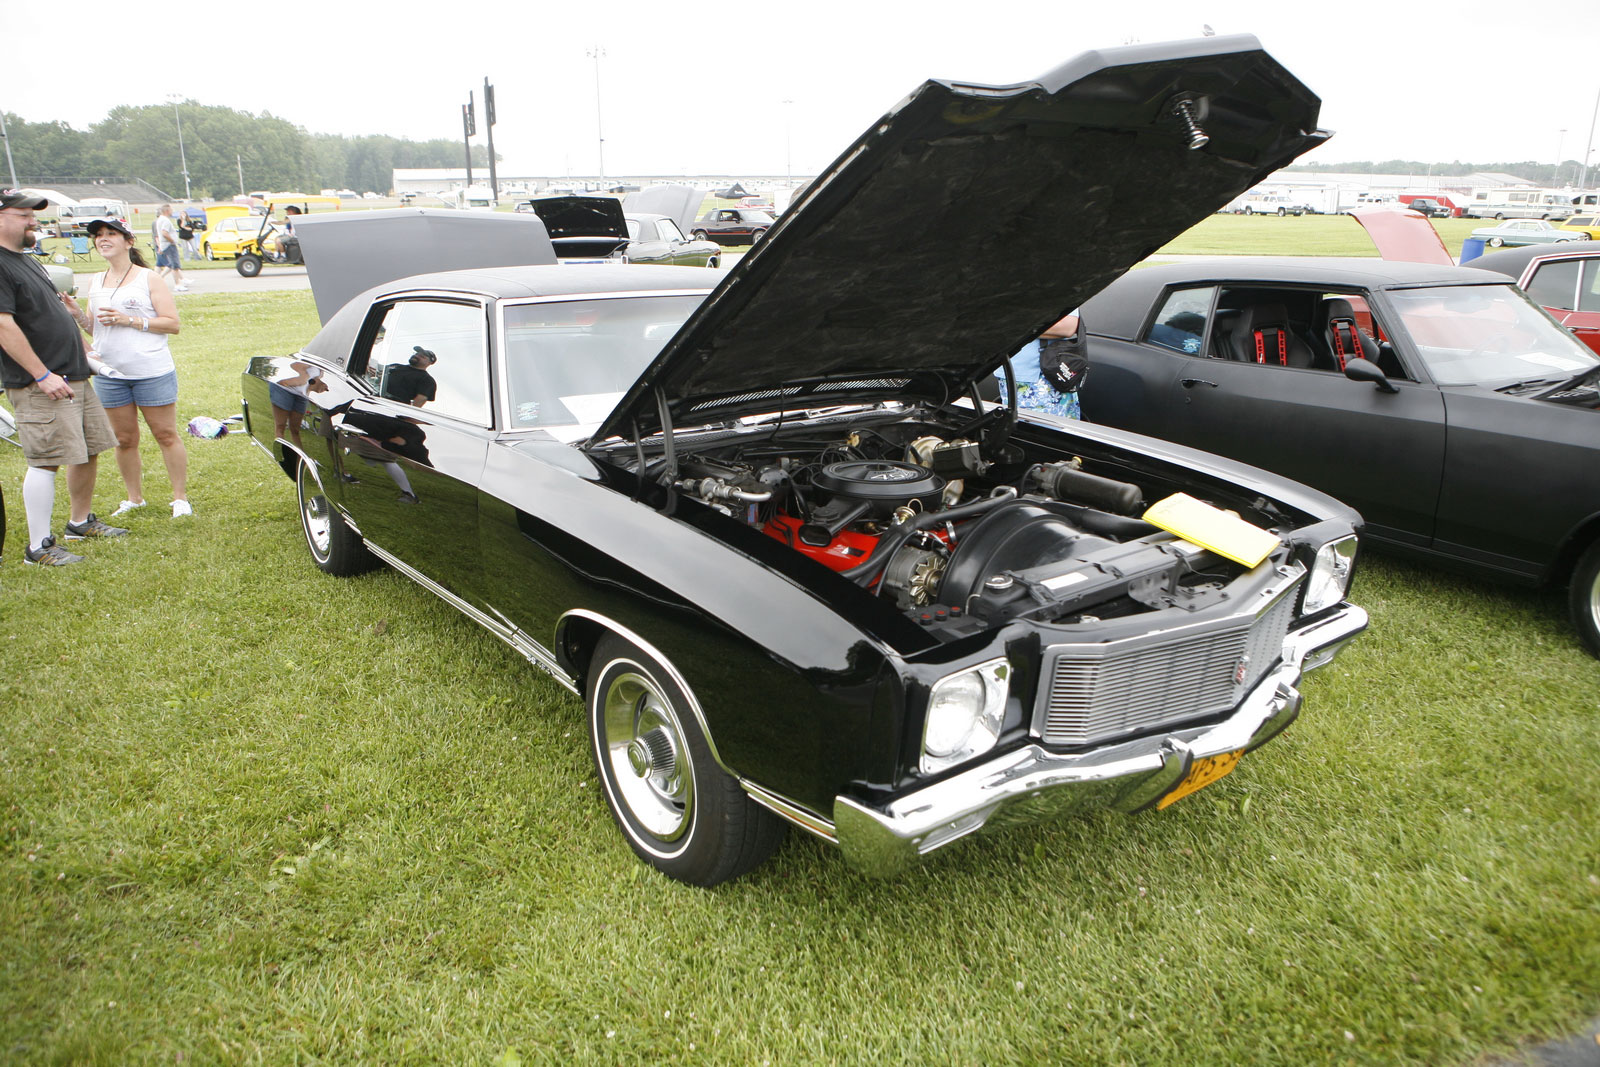 Sucp_1006w_14 Super_chevy_show_2010 Norwalk_ohio